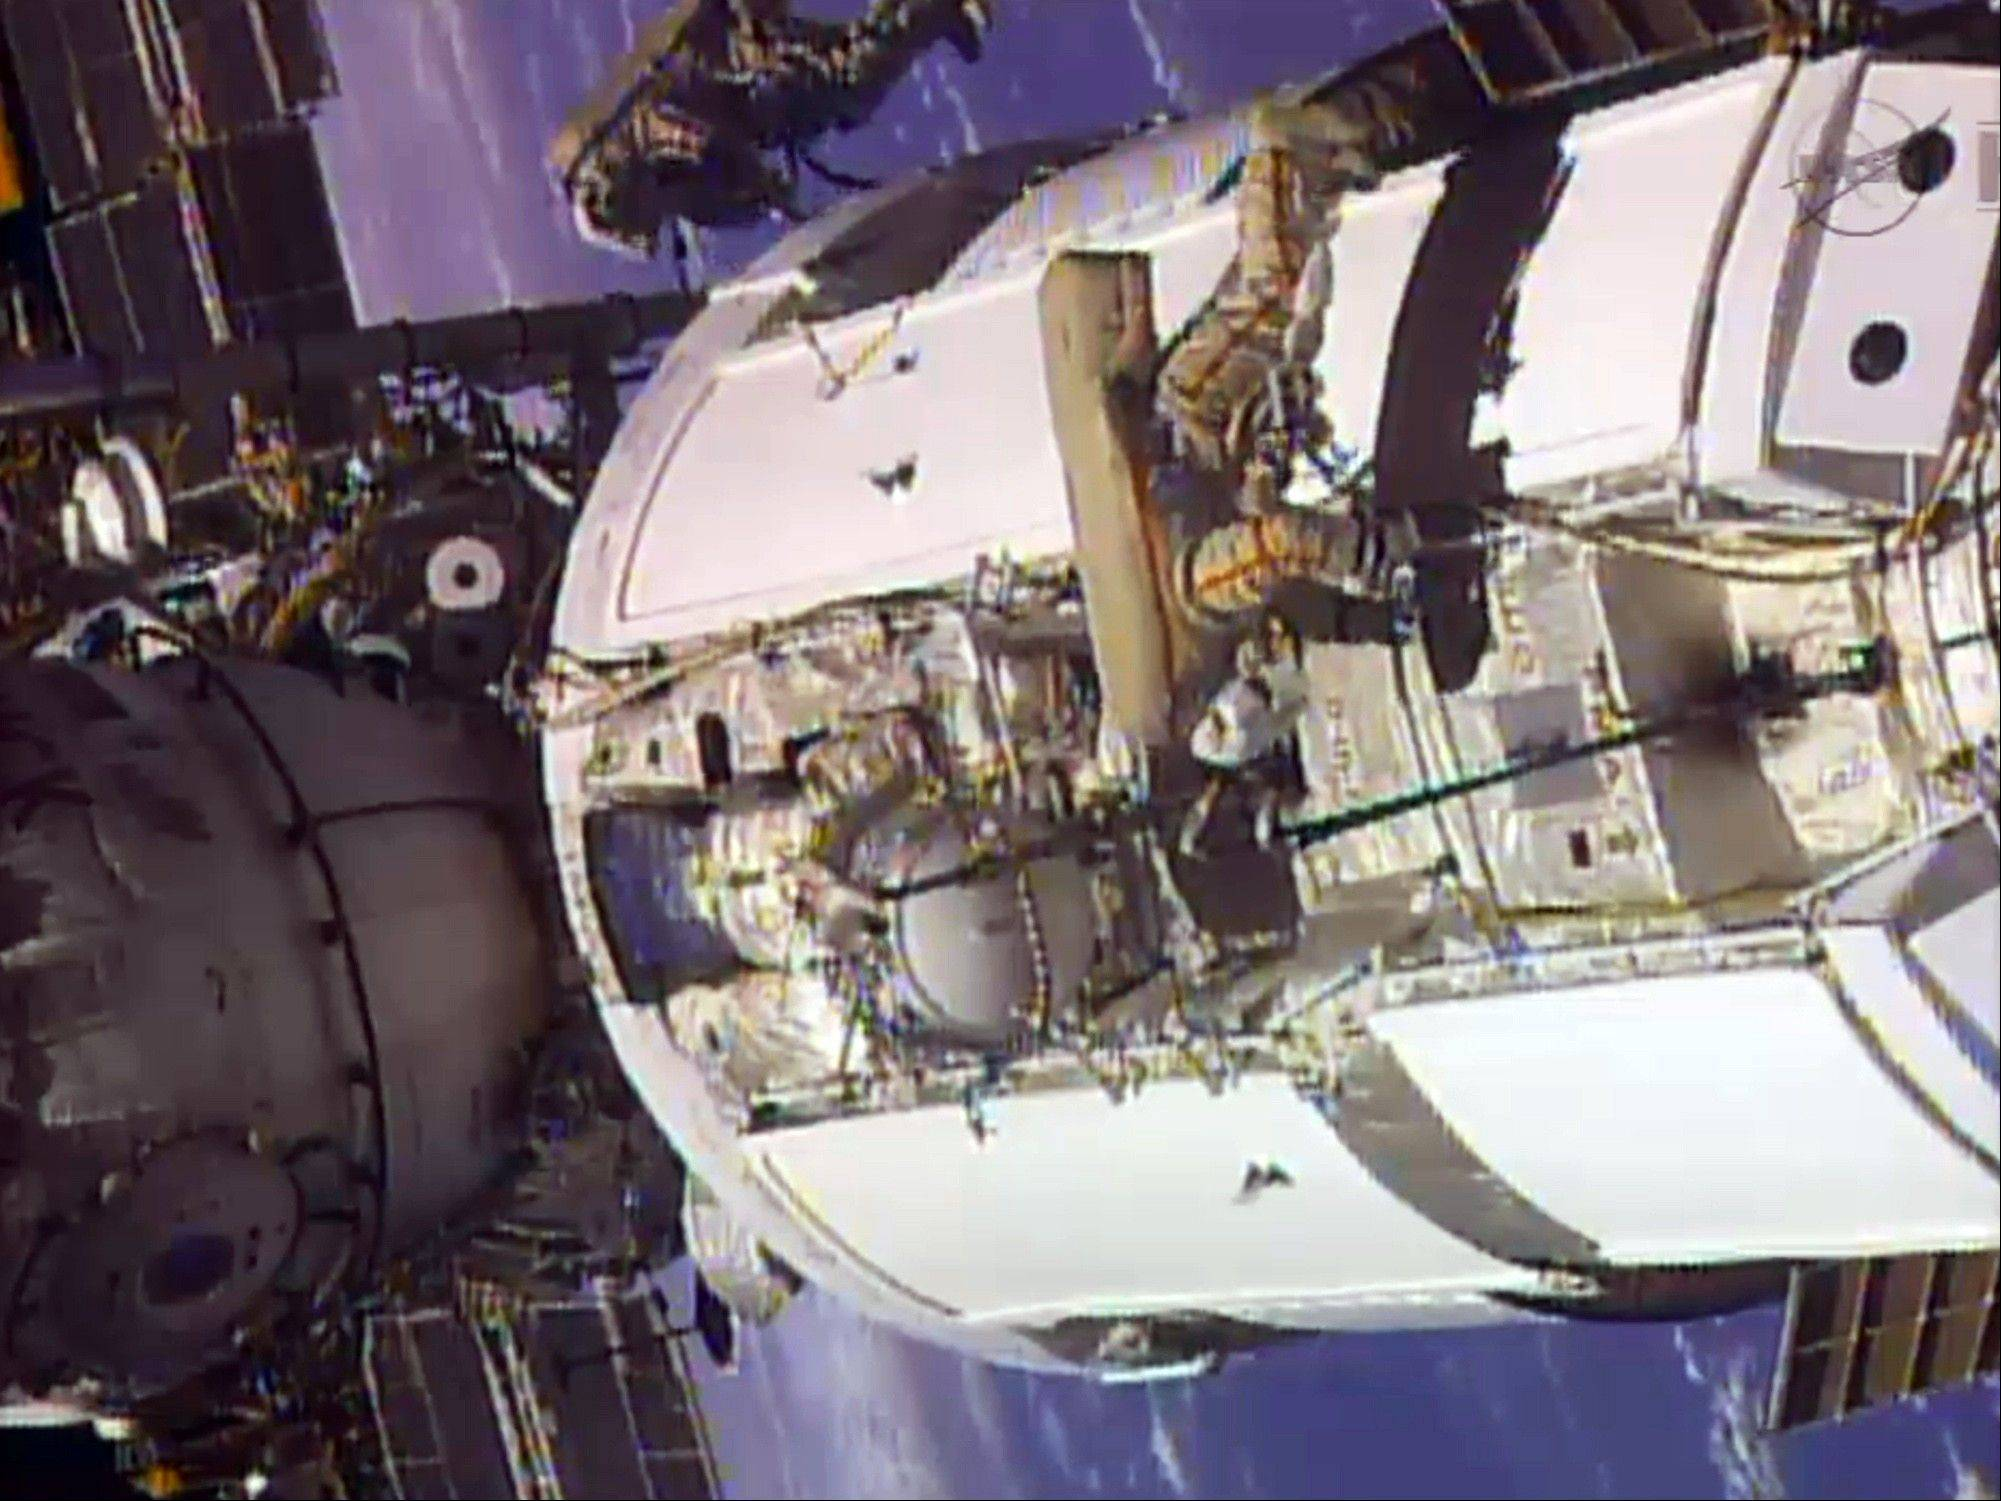 FILE - In this frame grab from video provided by NASA, two Russian flight engineers perform maintenance on the International Space Station, Monday, June 24, 2013. NASA said Wednesday it is looking into a problem with a malfunctioning cooling pump on the International Space Station, but there is no immediate danger to the six crewmen on board.